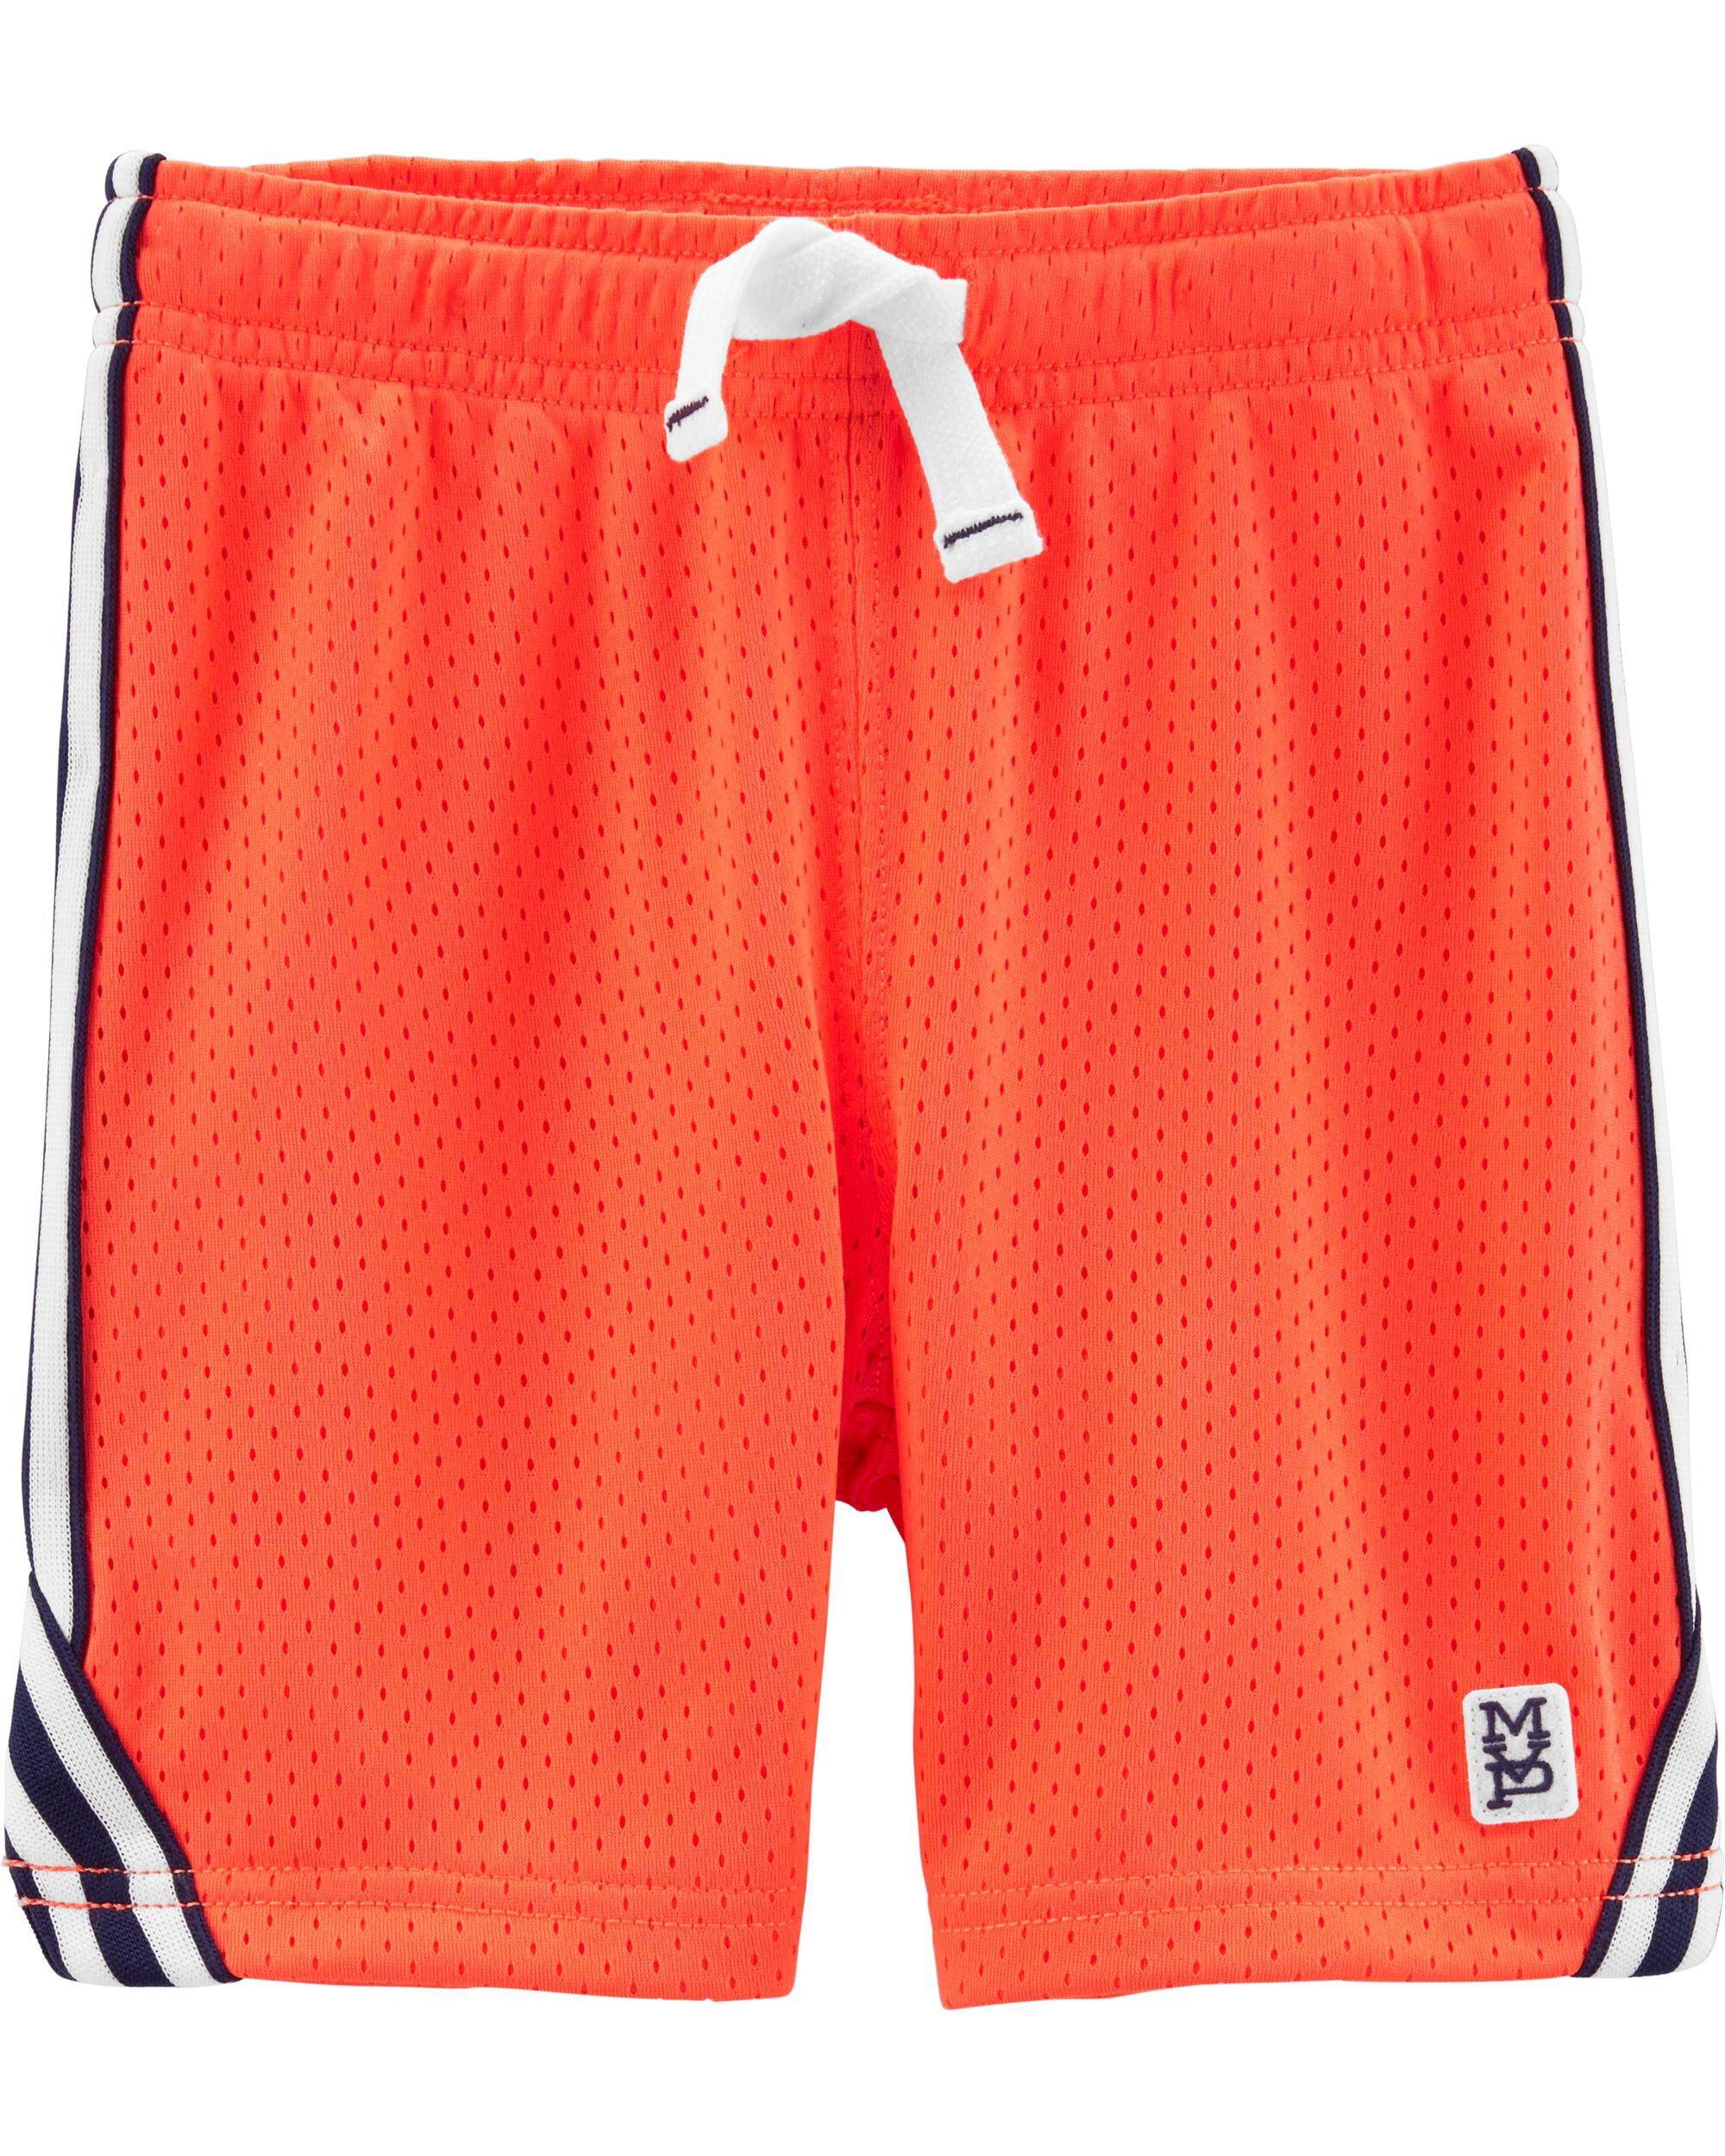 *Clearance*  Pull-On Mesh Shorts